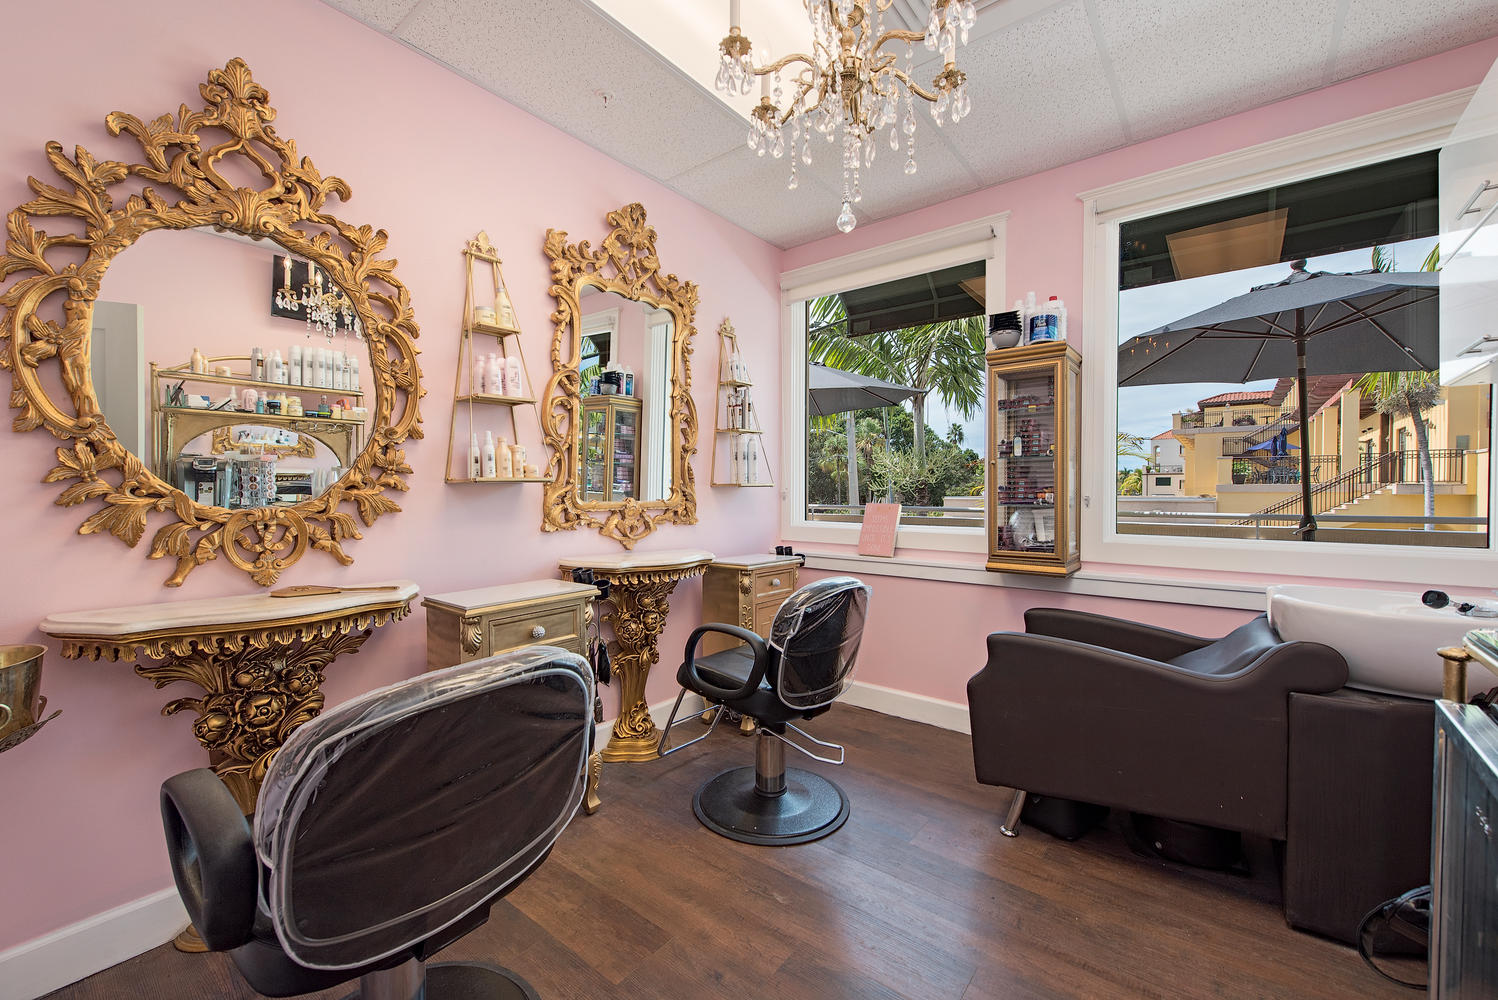 Salon alchemy salons by jc 5th avenue south for 5th avenue salon